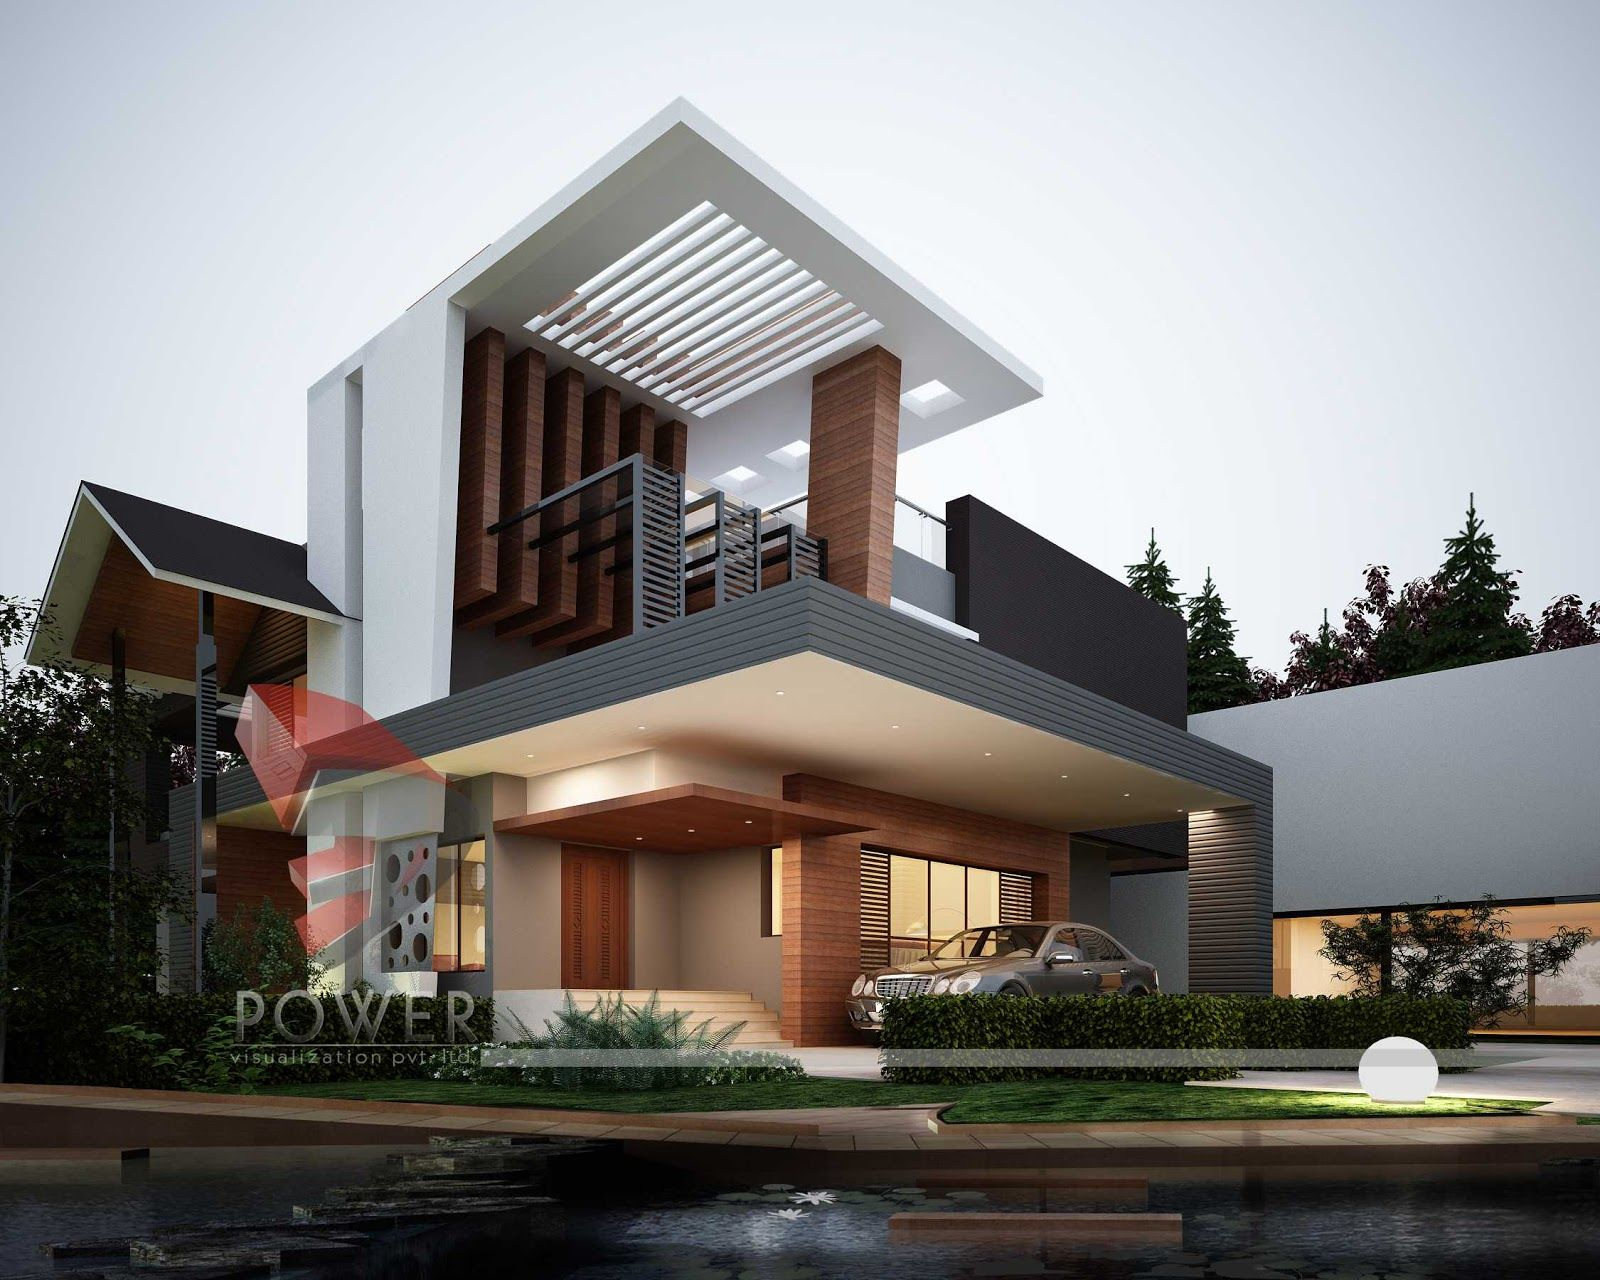 modern architecture houses 6 semidetached homes fair design ideas united by match modern architecture houses - Modern Design Home